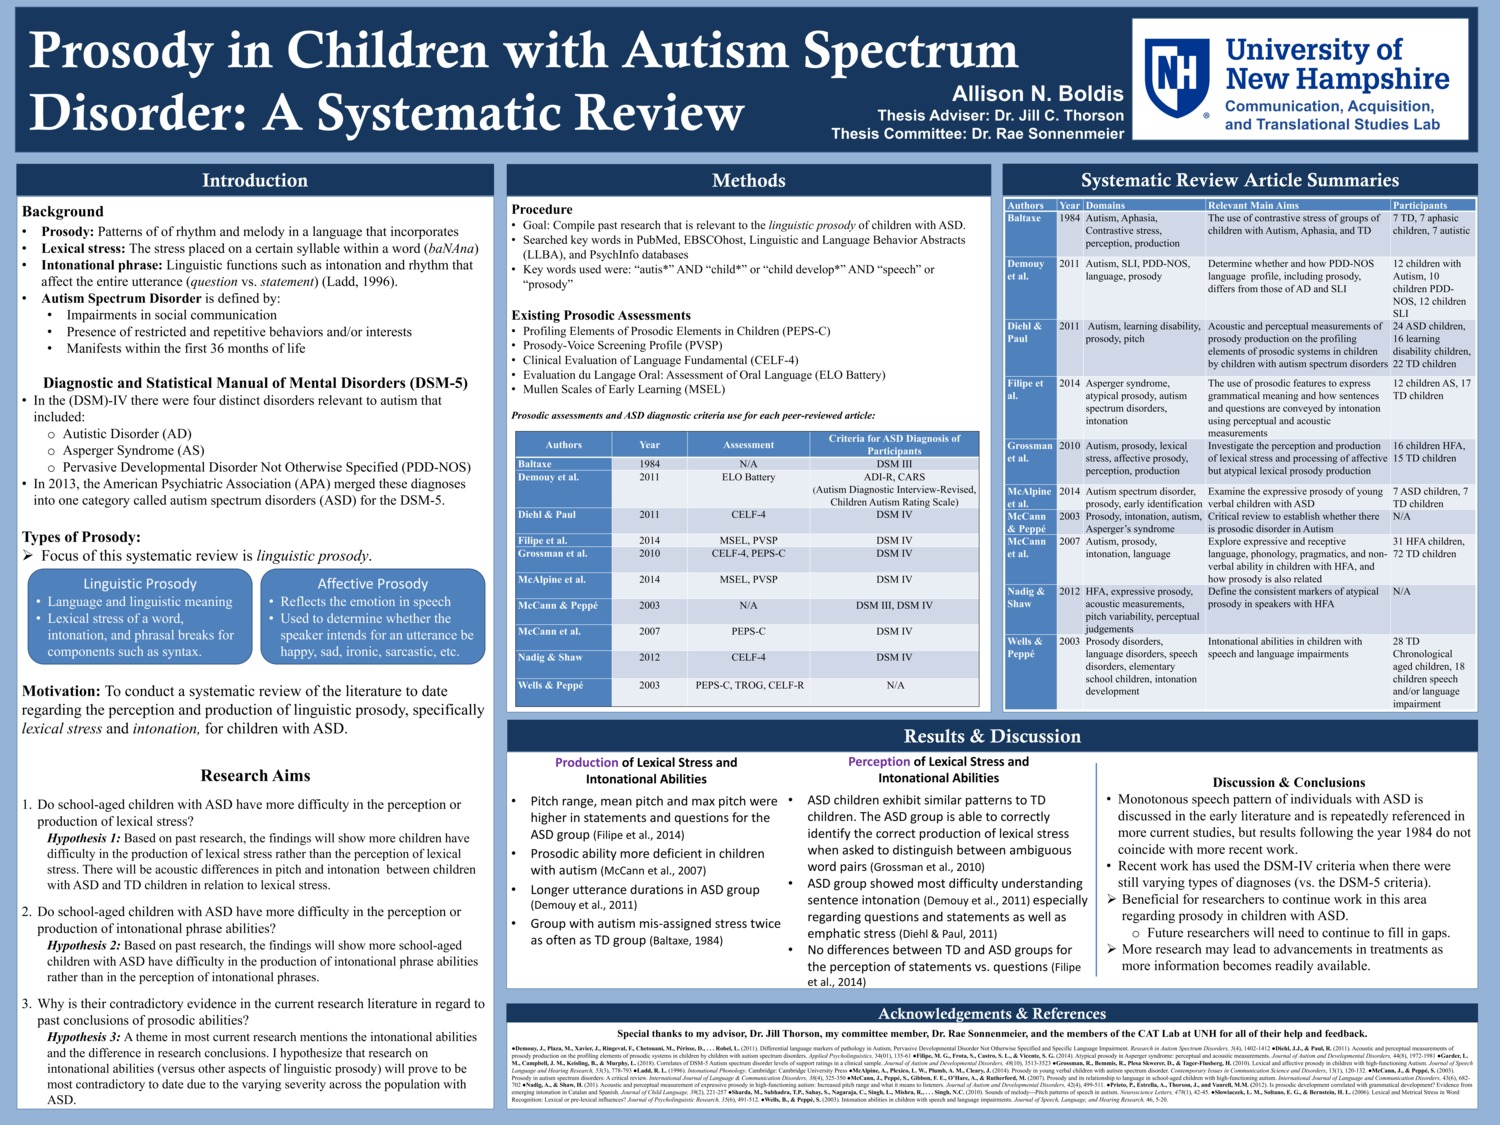 Prosody In Children With Autism Spectrum Disorder: A Systematic Review by anb1015